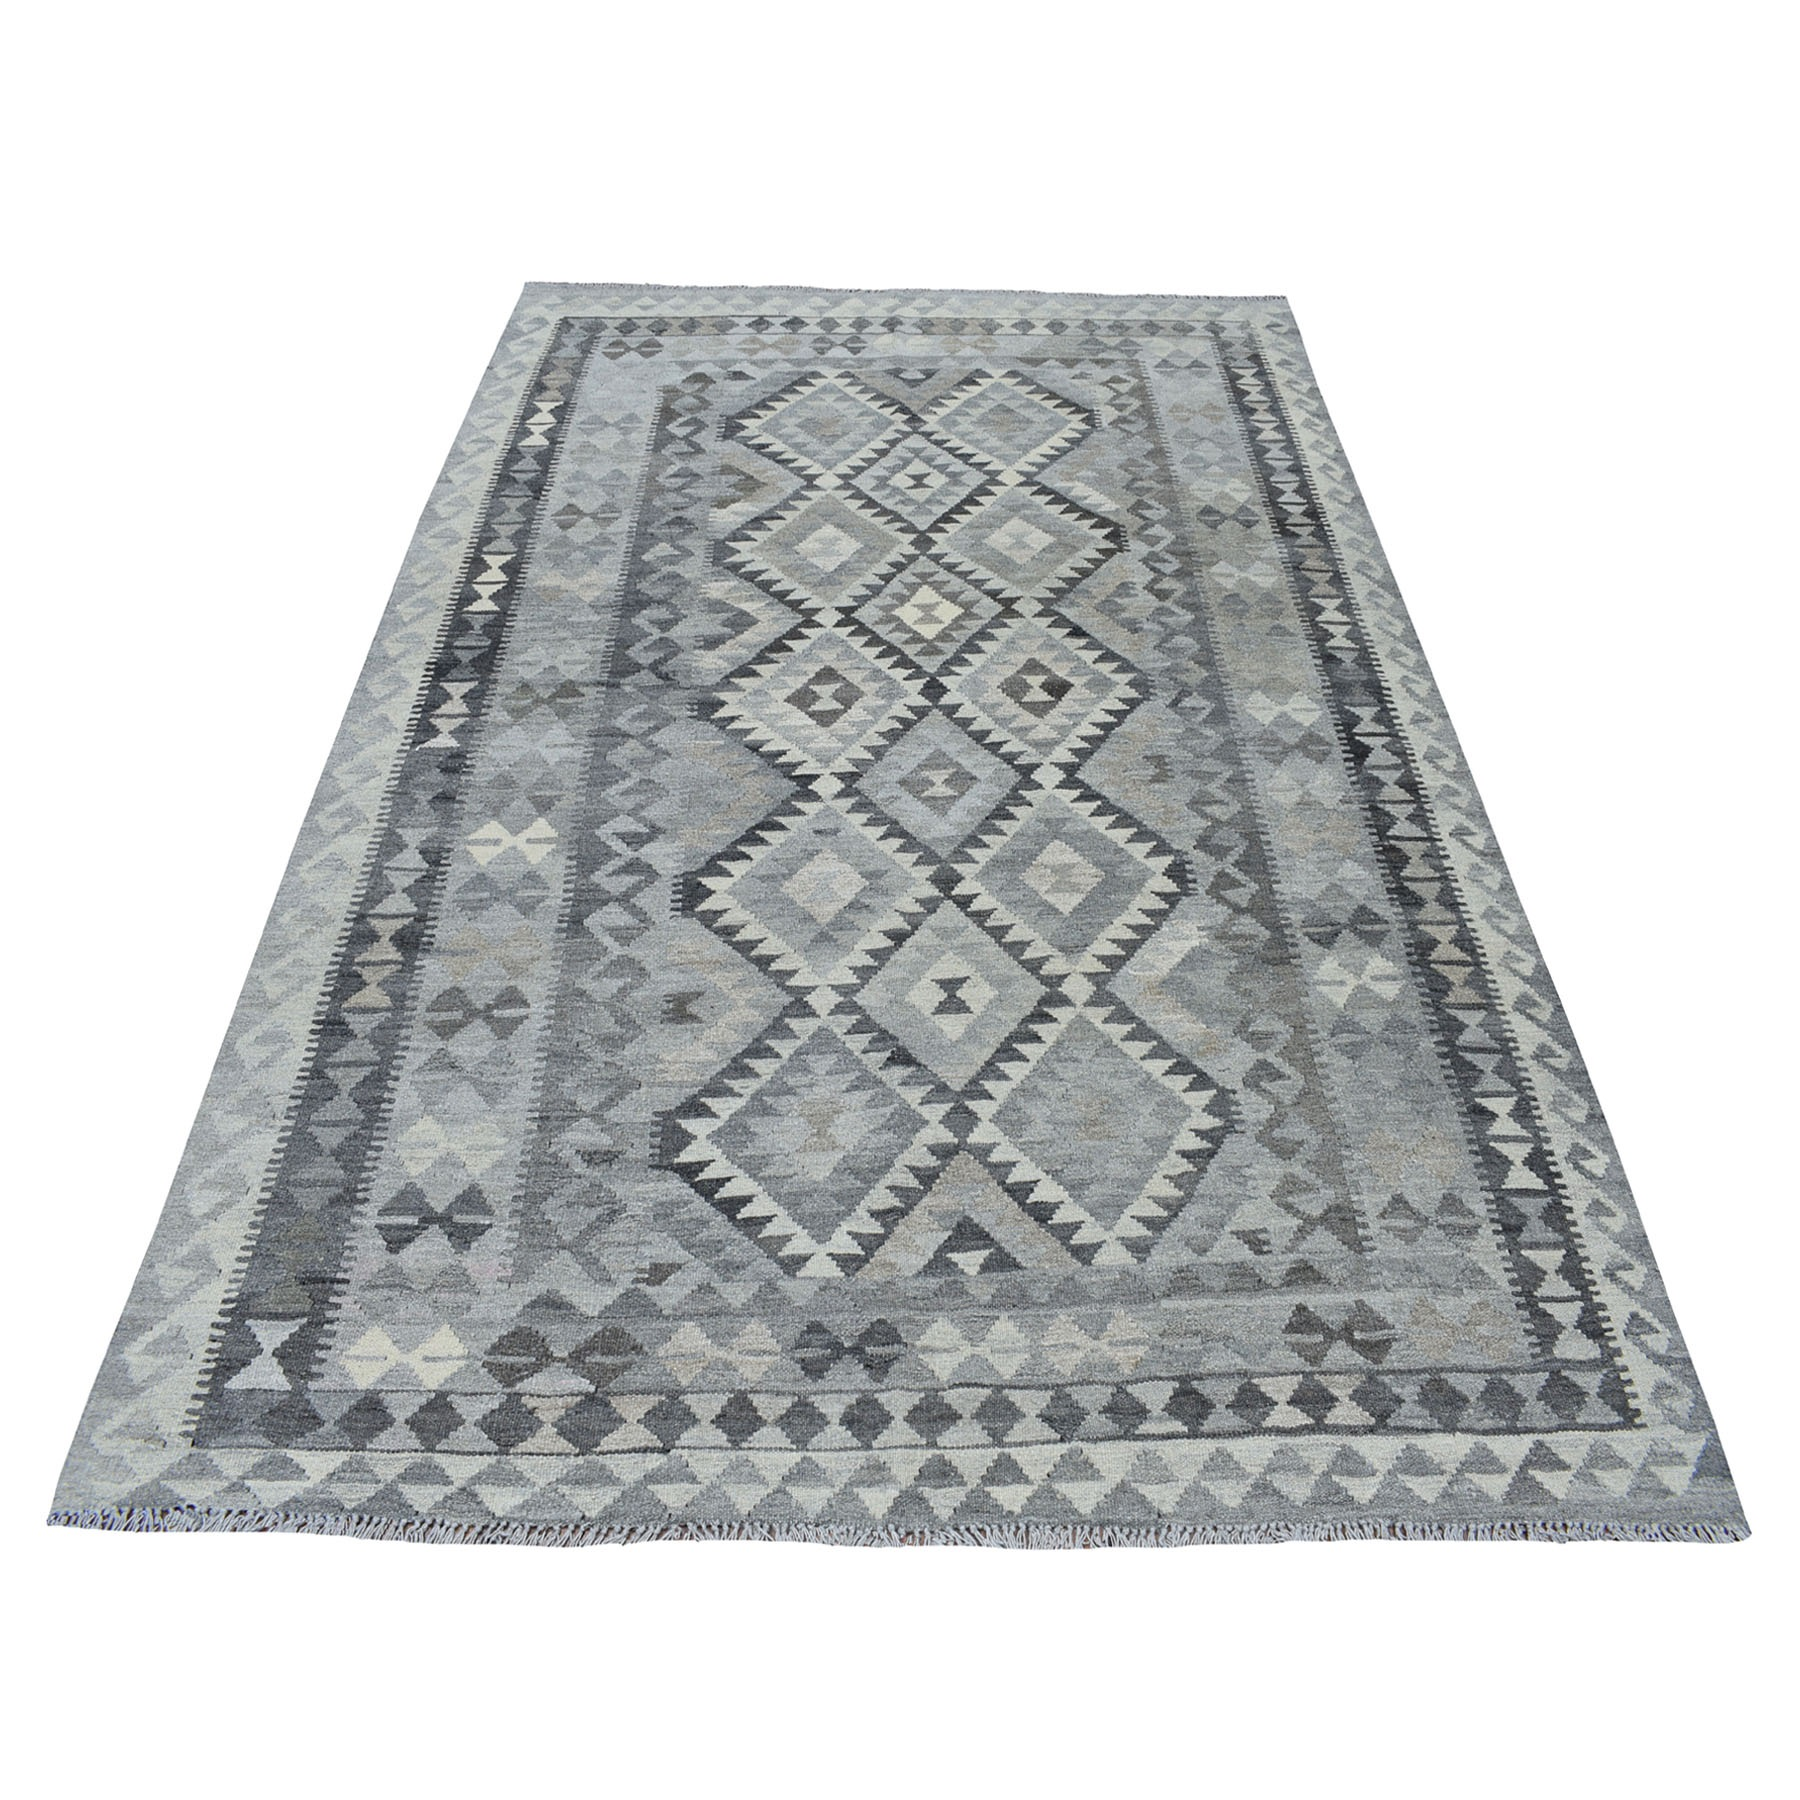 """5'9""""X8'1"""" Undyed Natural Wool Afghan Kilim Reversible Hand Woven Oriental Rug moaec0be"""